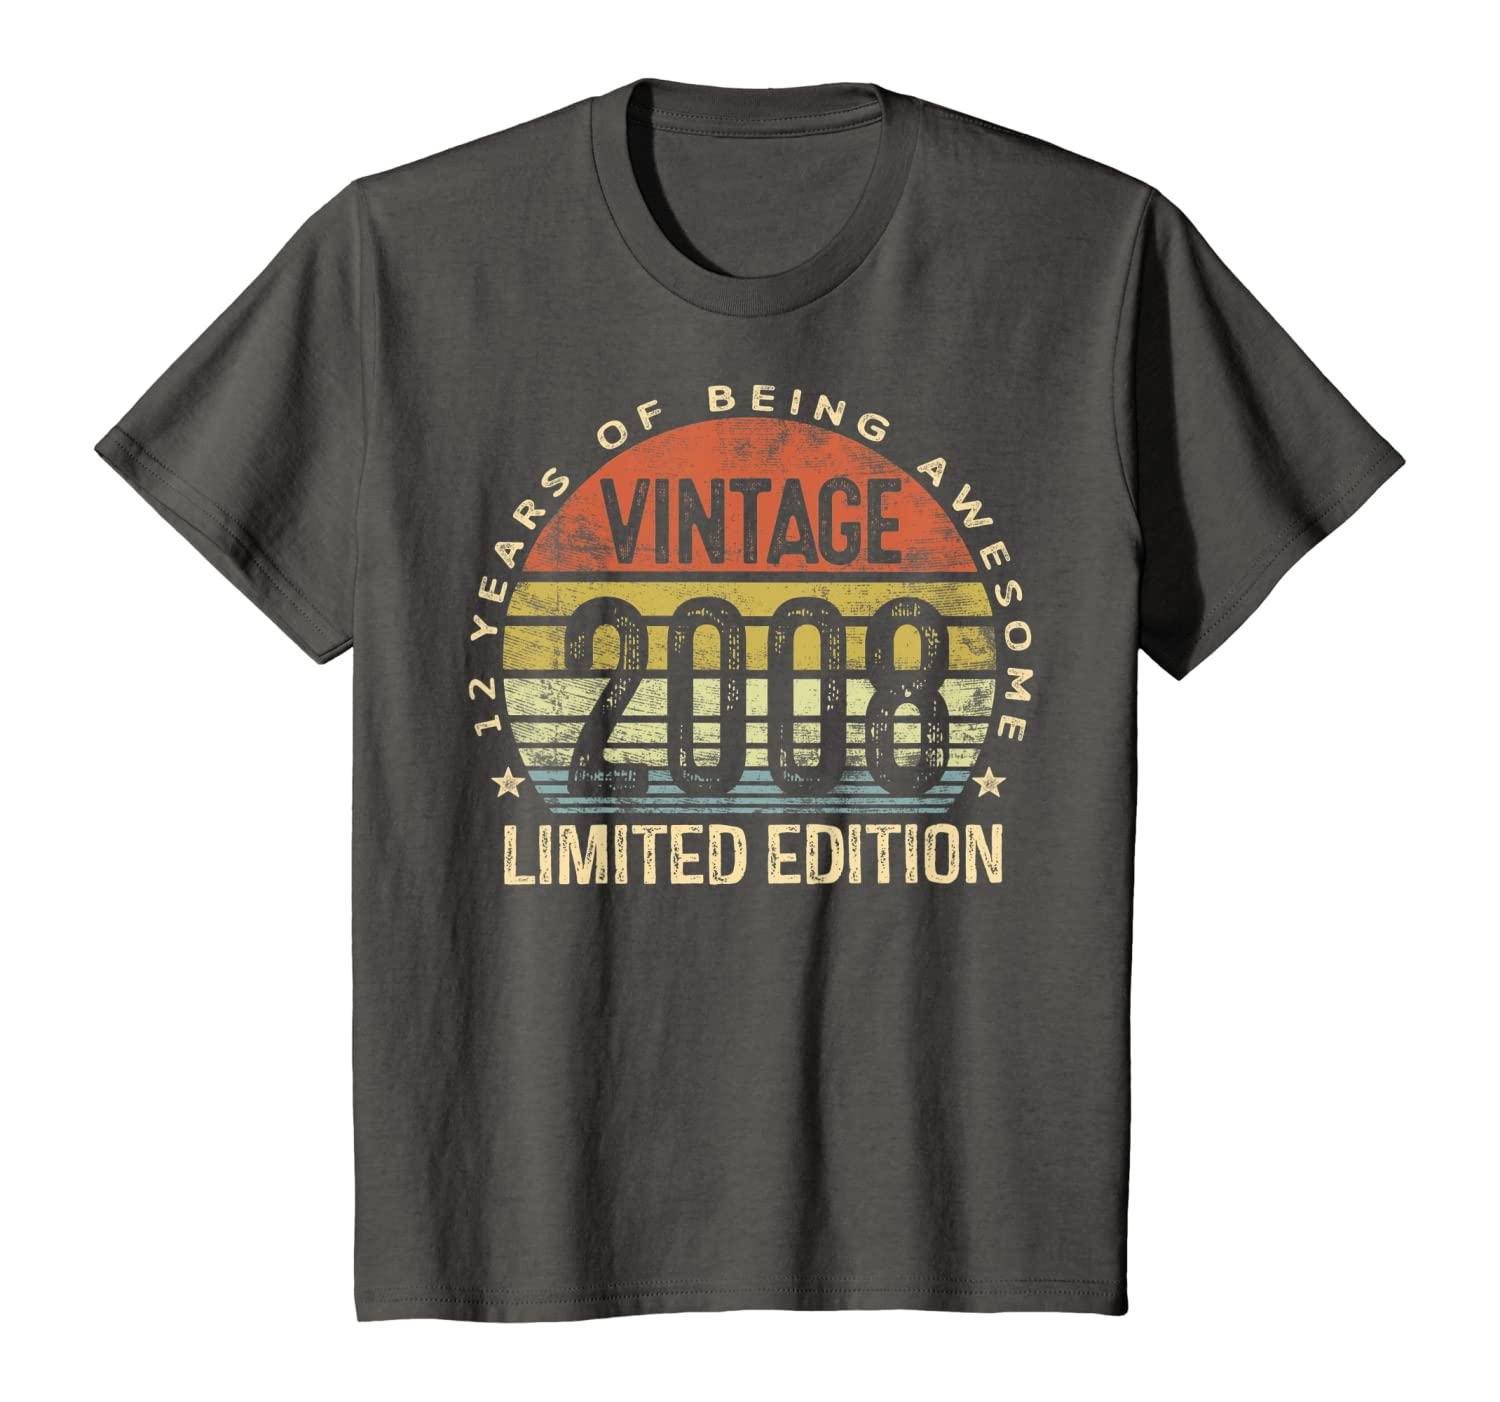 12 Year Old Gifts Vintage 2008 Limited Edition 12th Birthday T-Shirt Youth